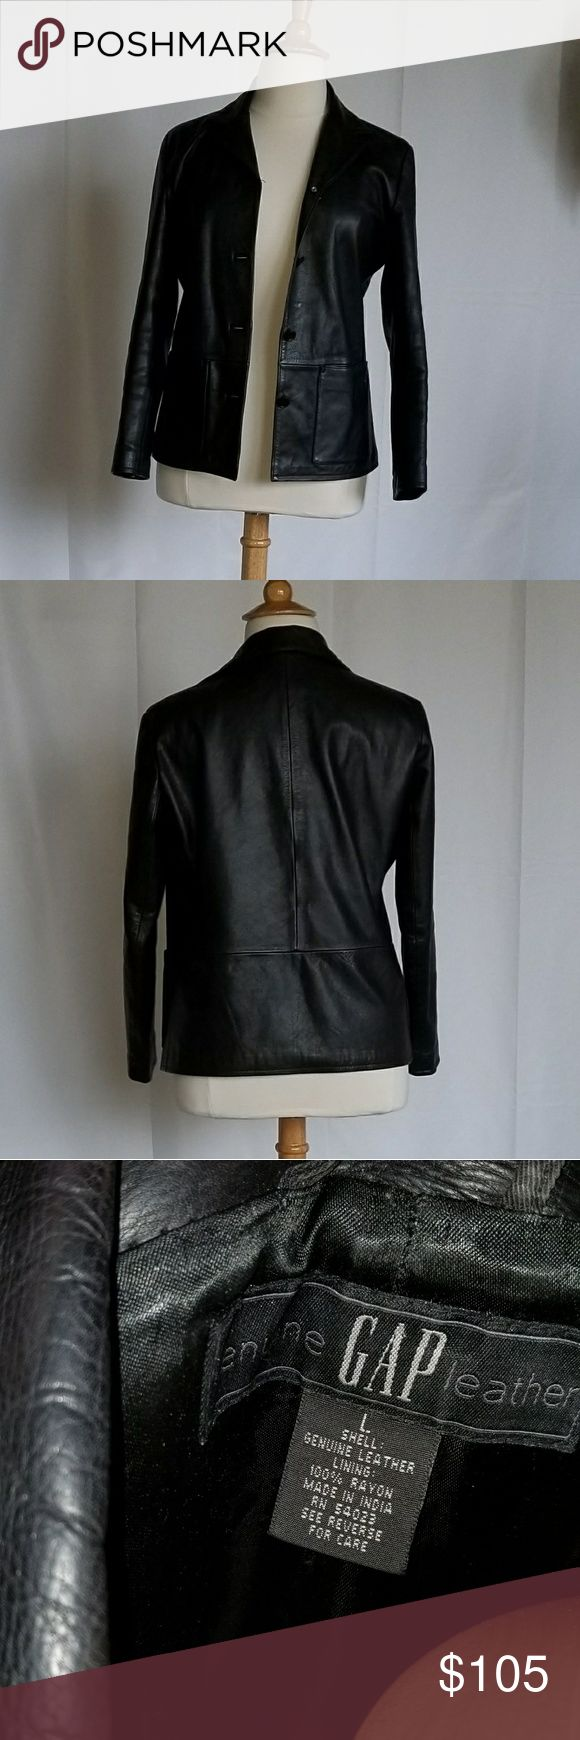 Ladies' black leather jacket Excellent, like New condition GAP Jackets & Coats